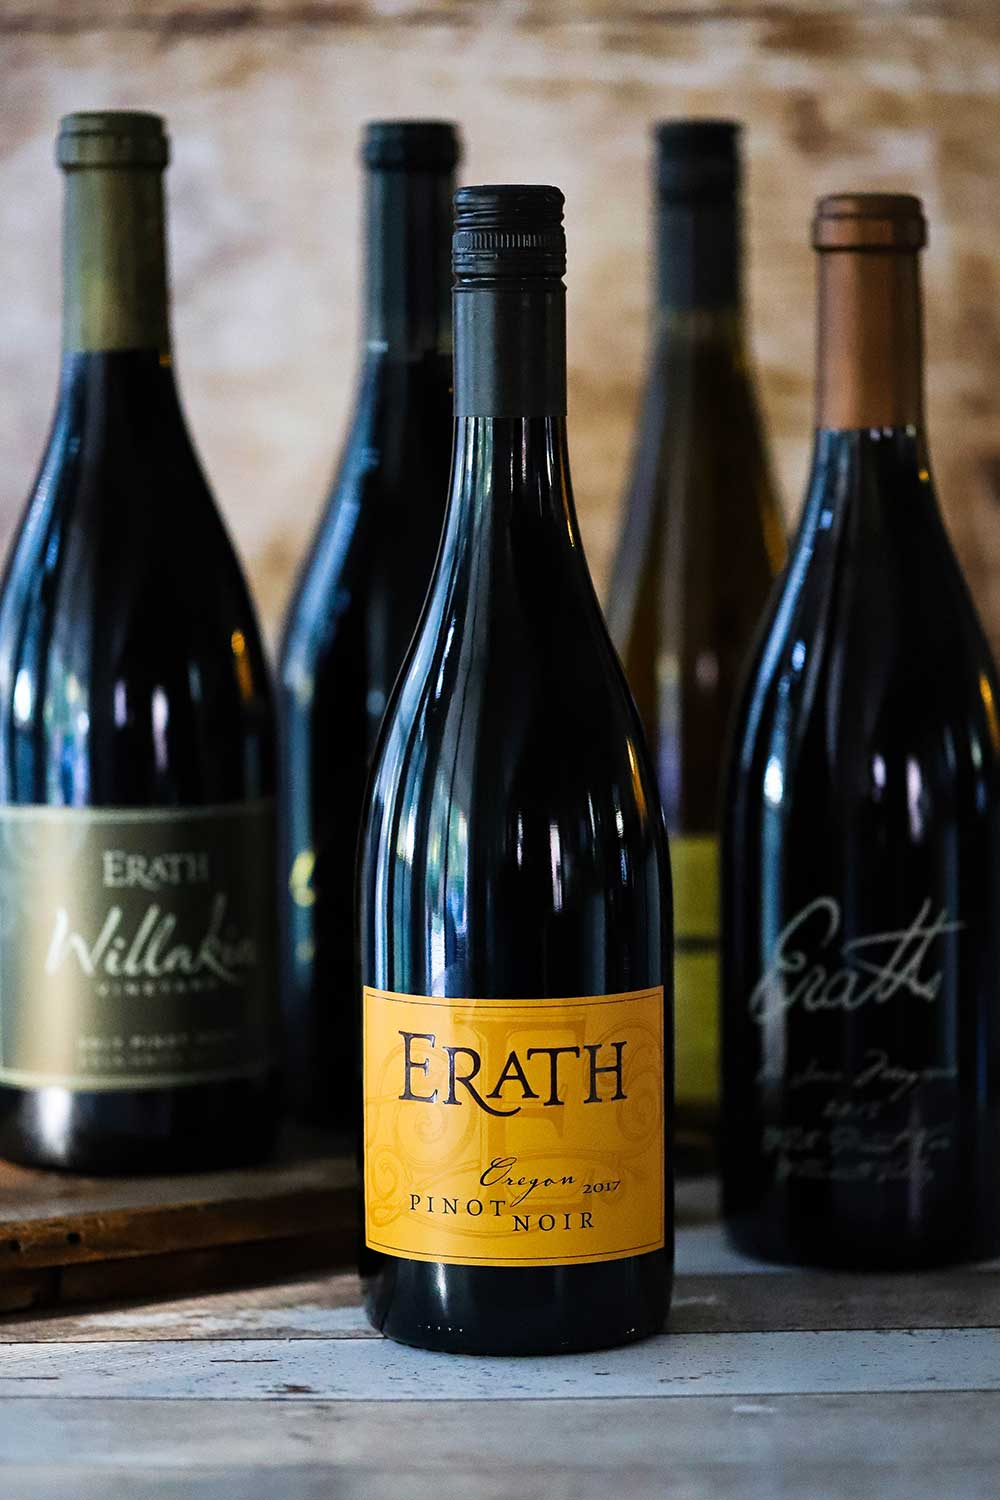 A collection of Erath Pinot Noir wine bottles standing next to each other.